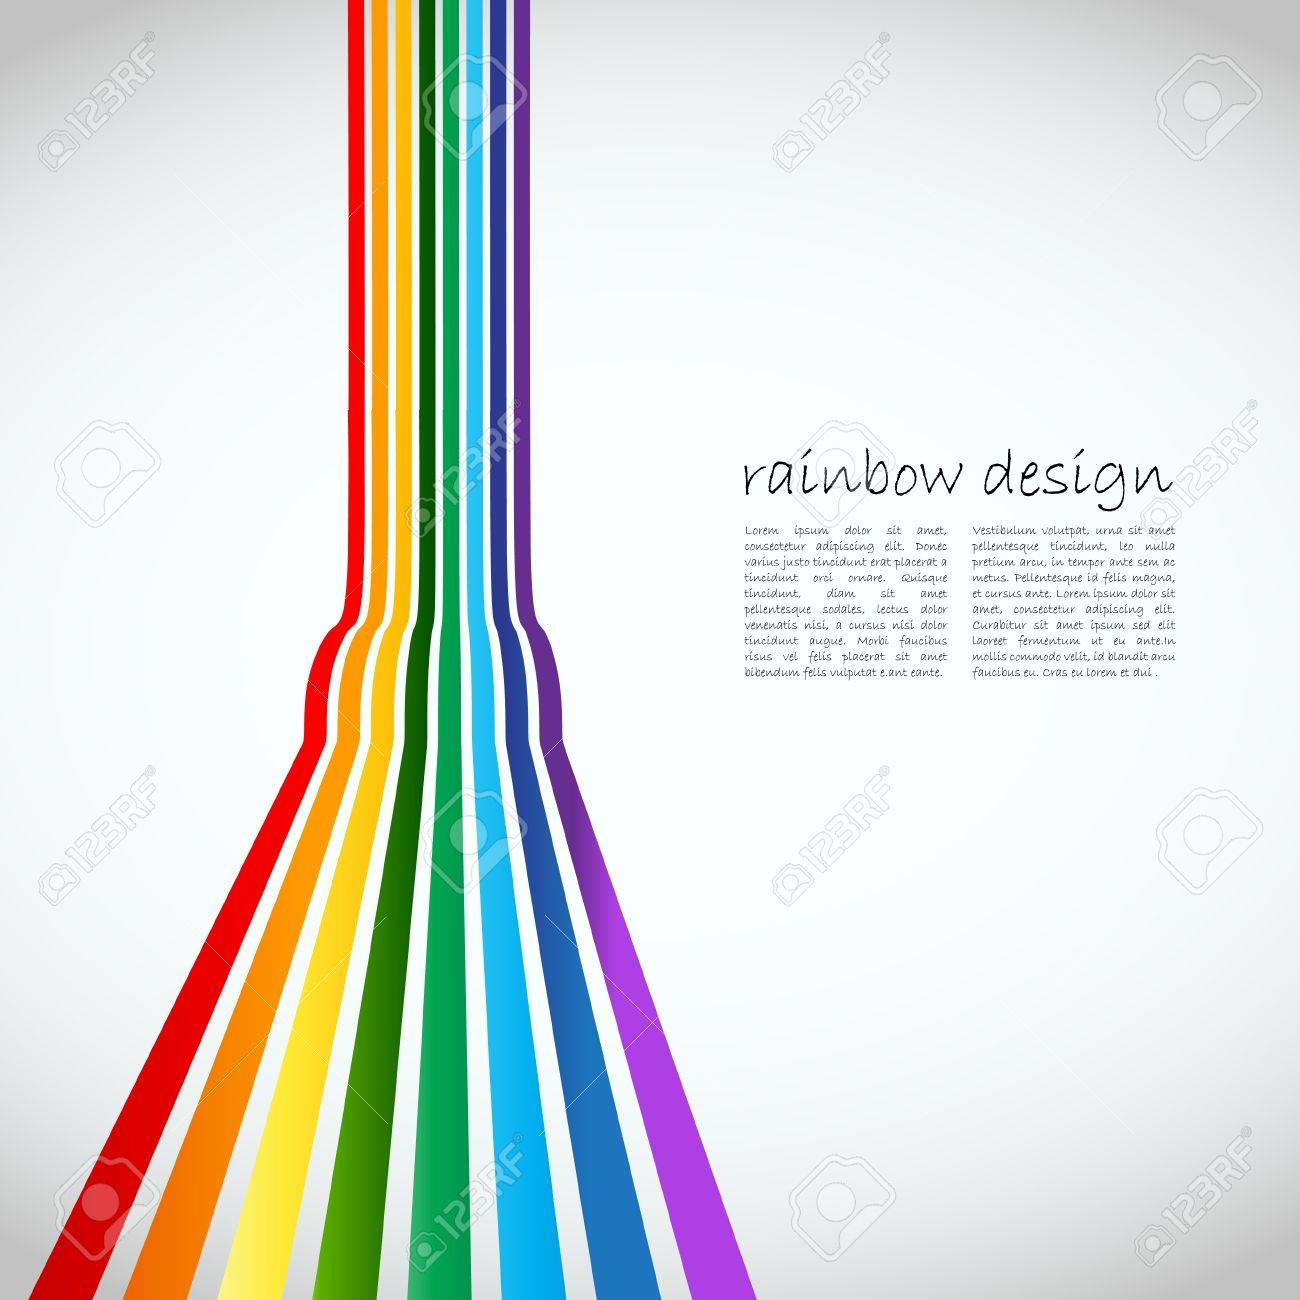 3D colorful lines on grey background illustration Stock Vector - 15282501